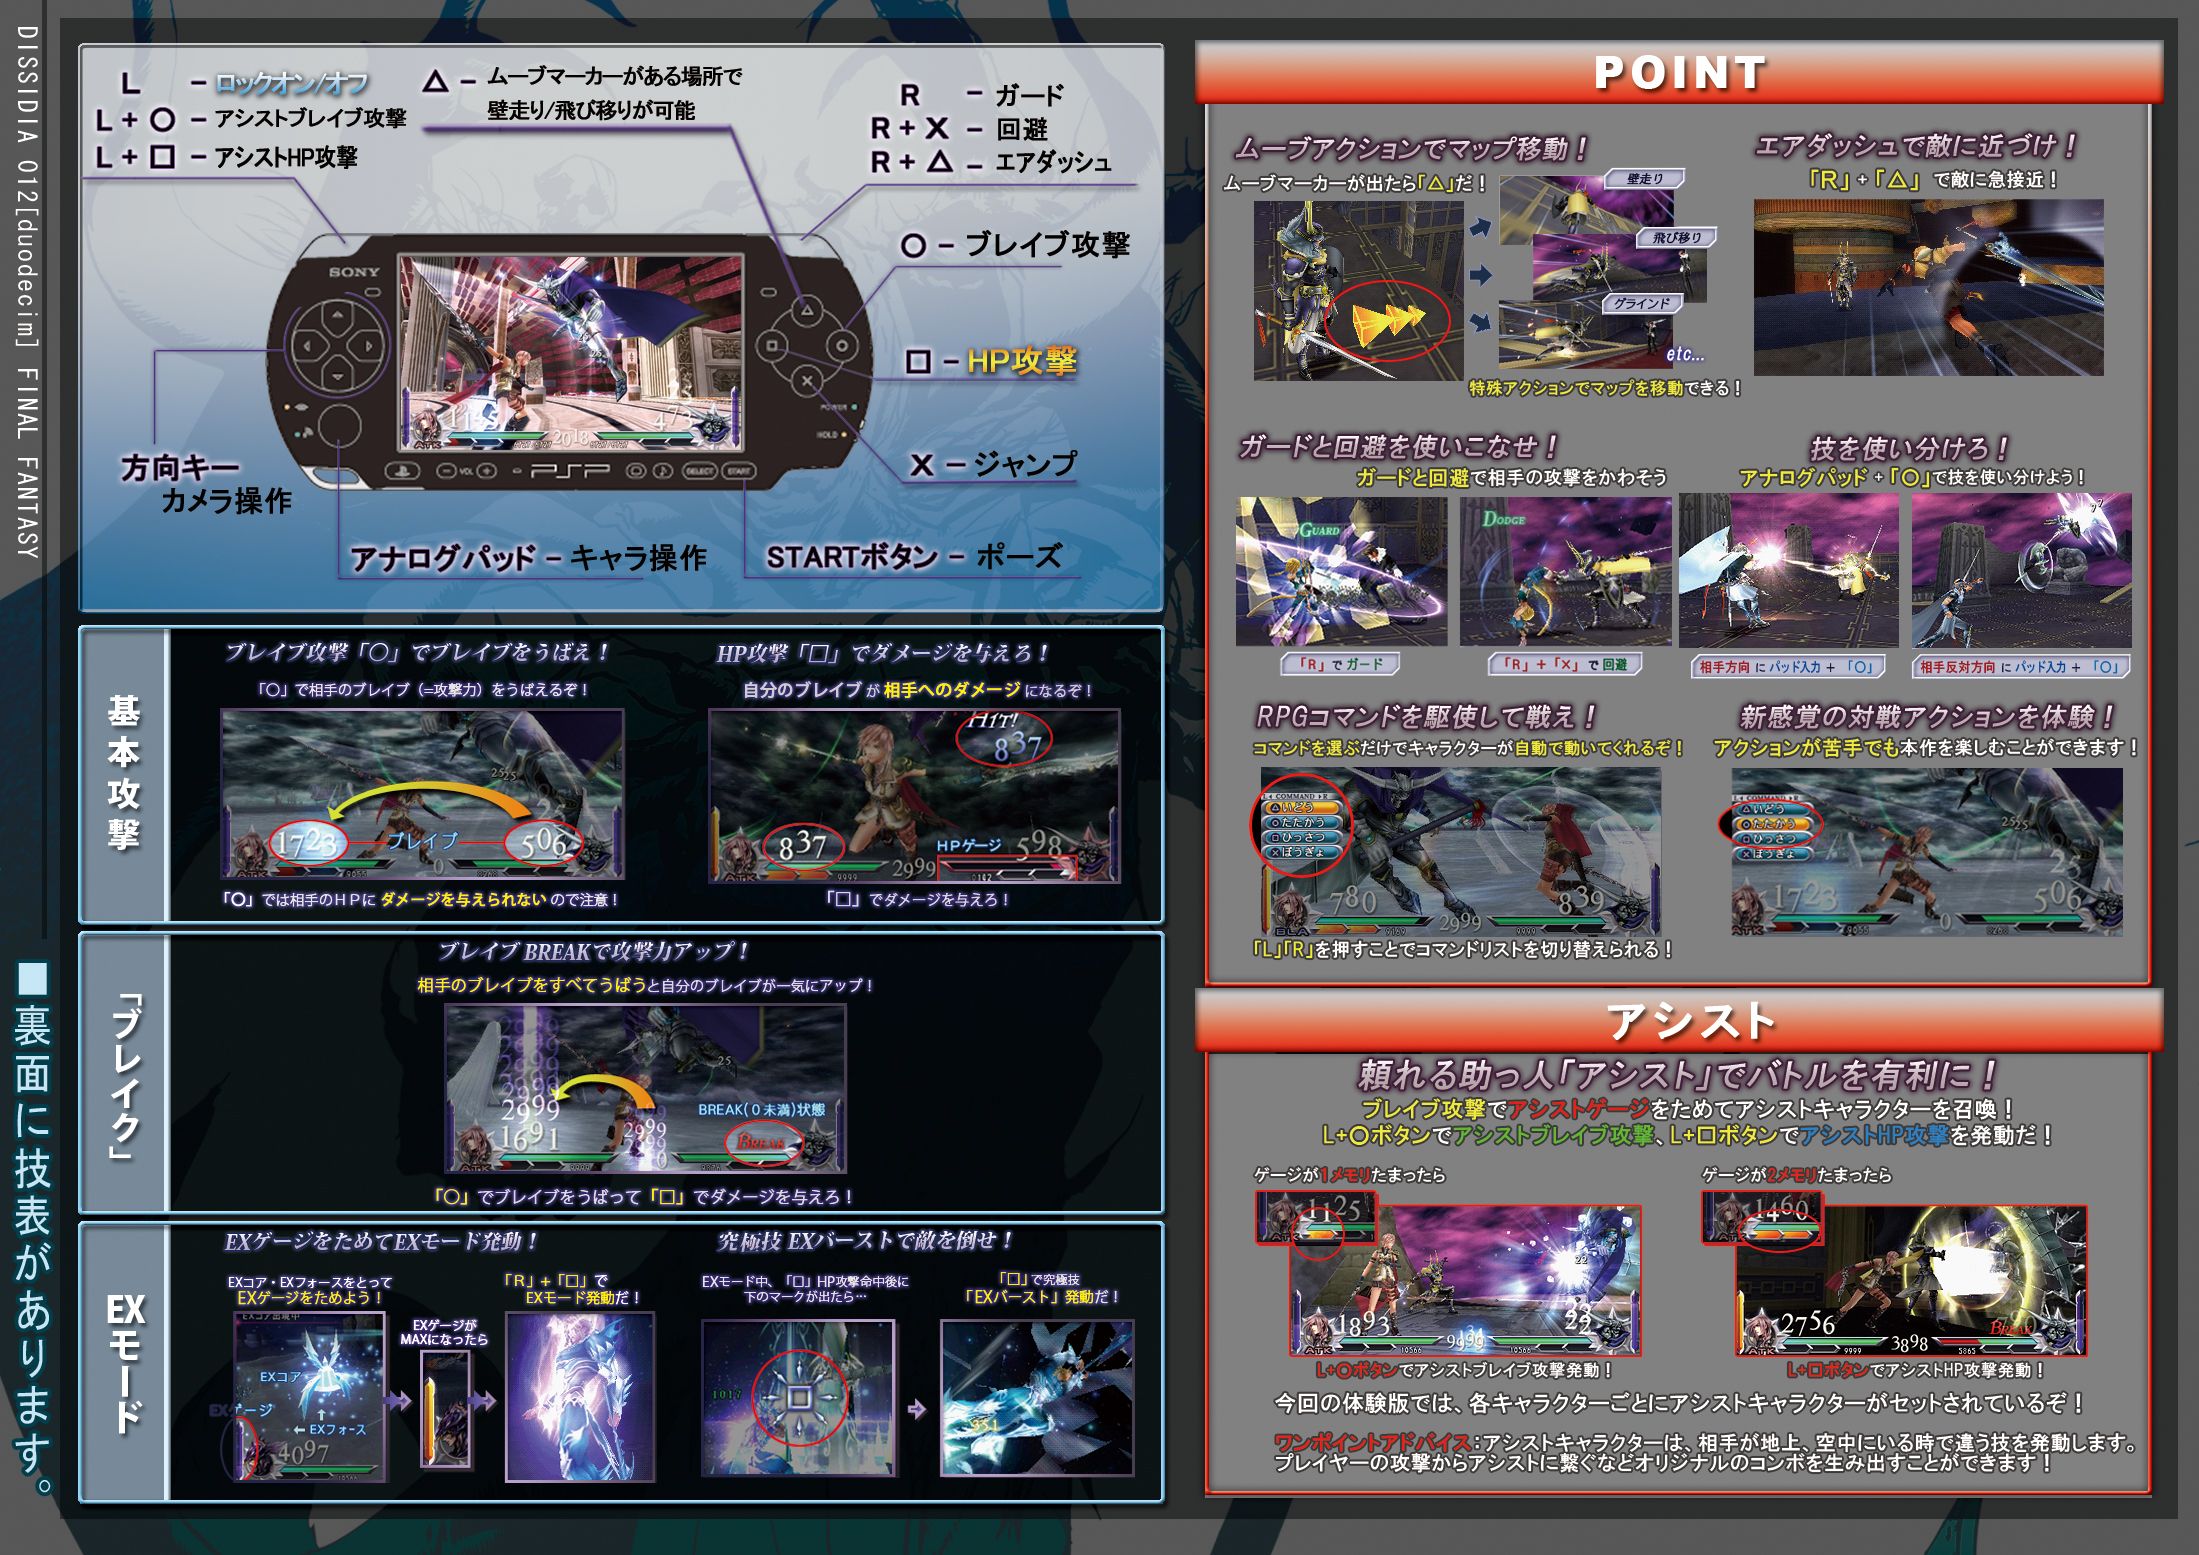 dissidia 012 duodecim prologus final fantasy save data